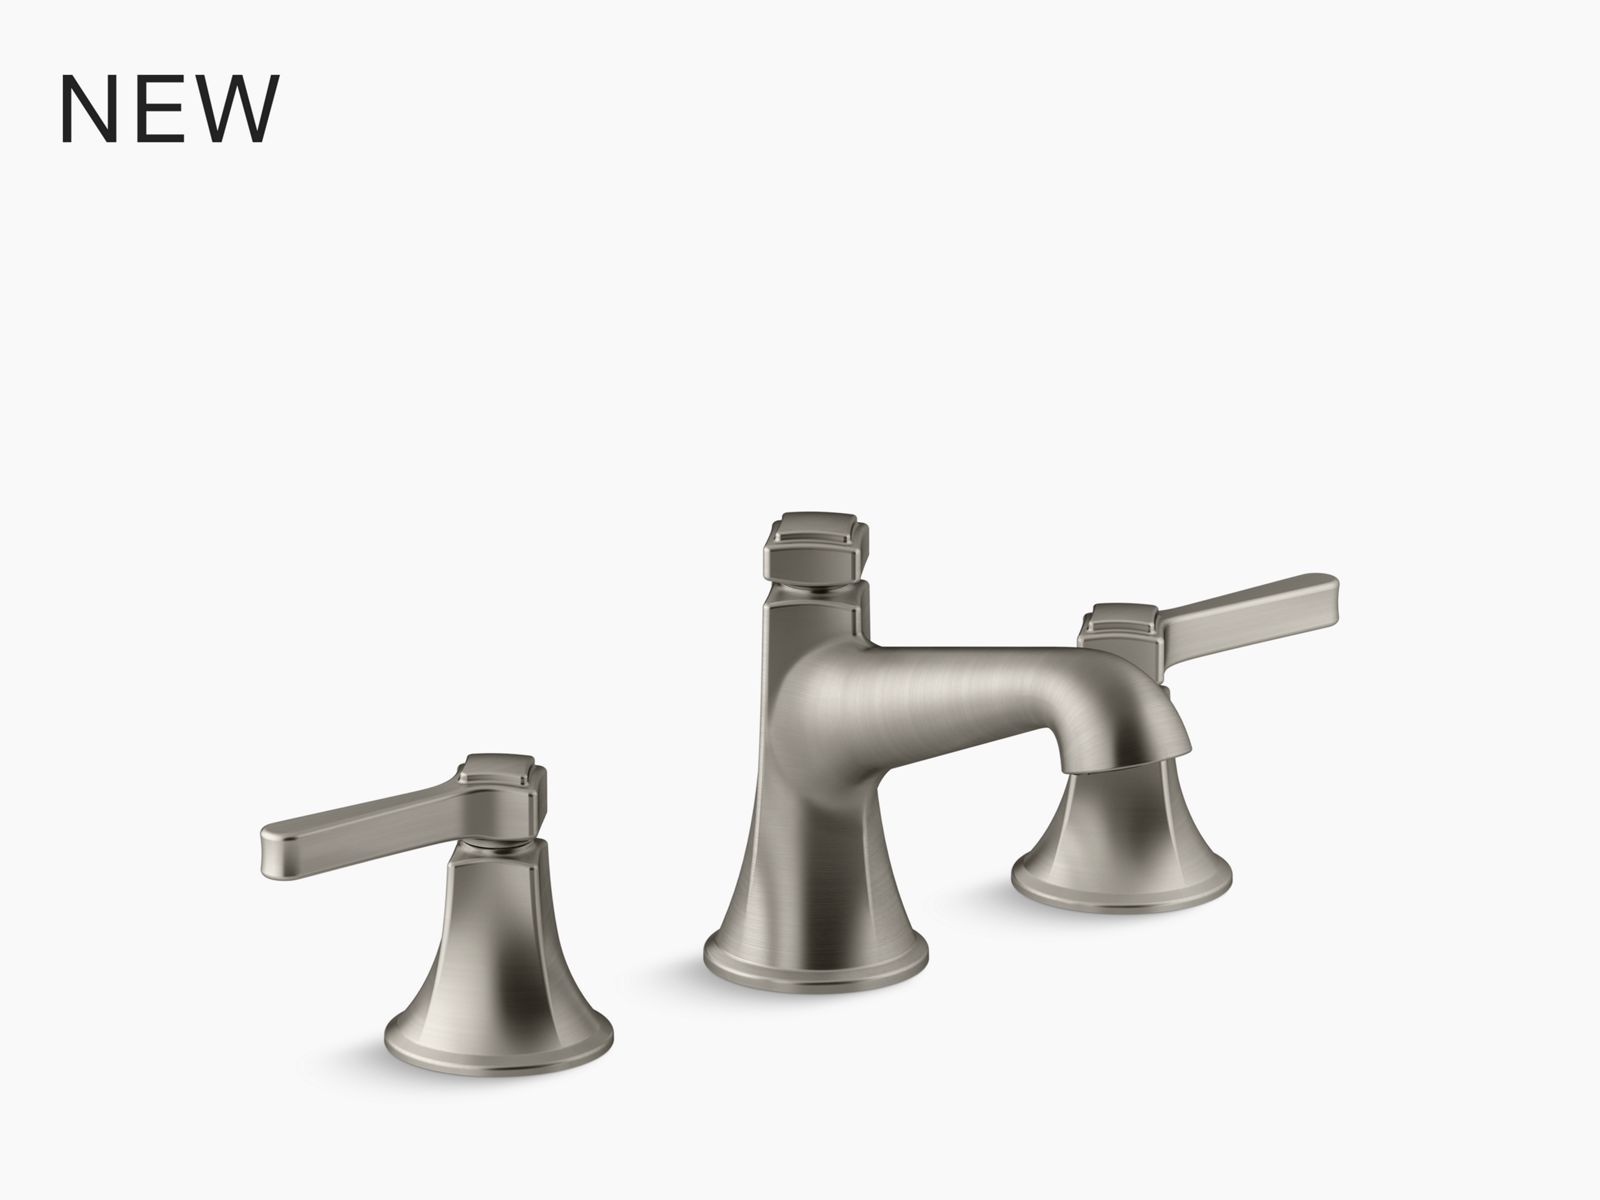 simplice three hole kitchen sink faucet with 9 pull down spout soap dispenser